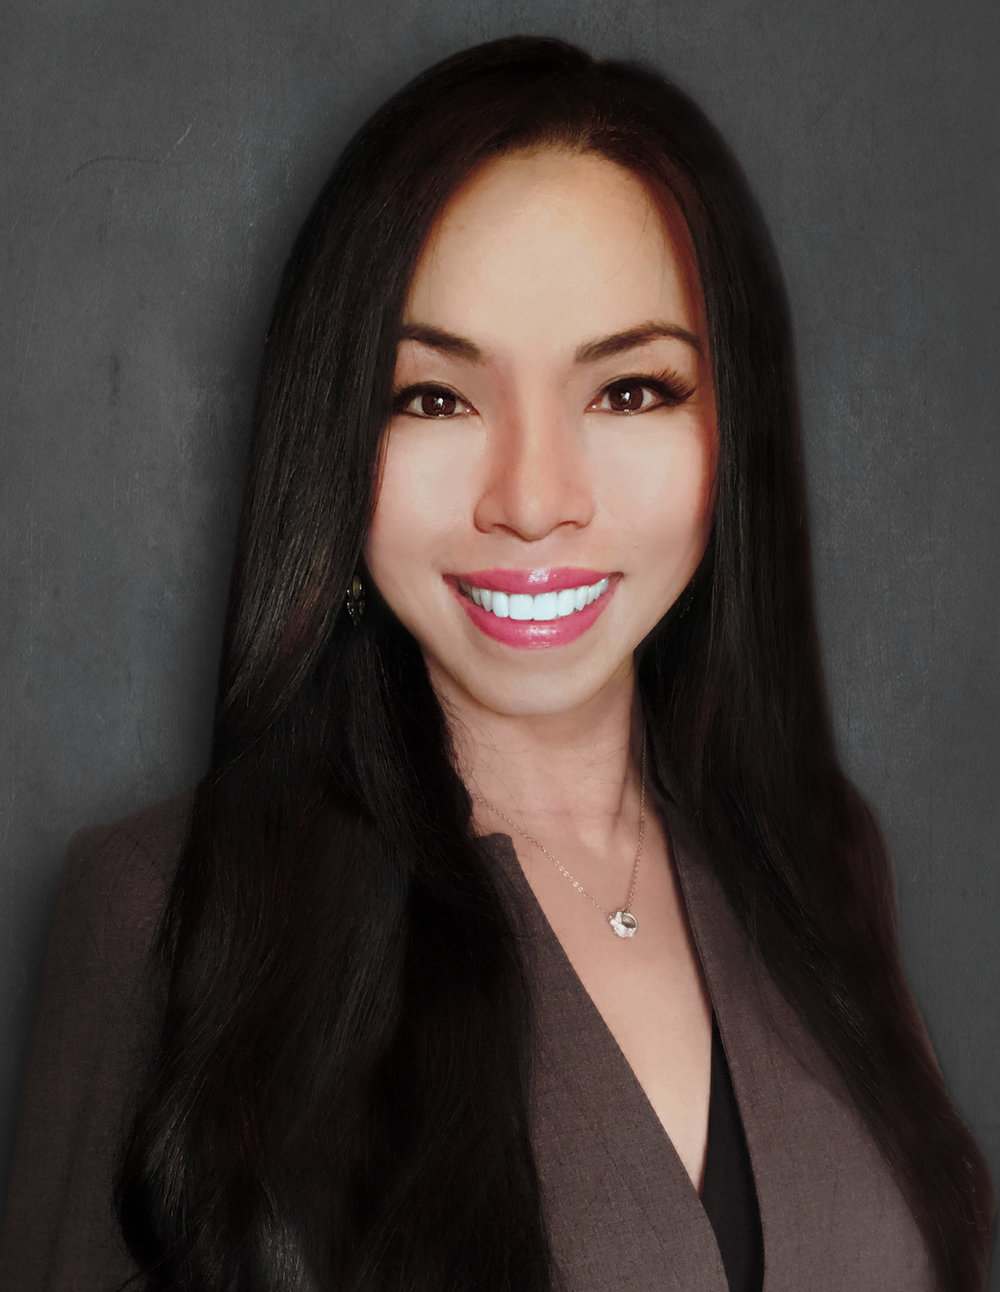 Gloria Hu - Corporate e-Business ManagerGloria joined Eagle Infrastructure Services through Applied Consultants, Inc. in August 2014, as an eBusiness Manager. Gloria is responsible for web-based aspects of business functions which includes digital marketing, website design and development, creative design and technological needs of business. Leads digital team project collaboration for continuous improvement of employment hiring system. Gloria has 12 years of experience in developing interactive websites and project management. Her portfolio includes providing services to educational organizations, business and higher education.Prior to joining Applied, Gloria was an Instructional Designer for Howard College, a creative director for Lilium Creative Solutions and Indigo Design Marketing in MN. Gloria graduated from Brigham Young University Hawaii with a Bachelor of Science degree and a Master of Education in Instructional Design and Technology from W. Texas A&M University.